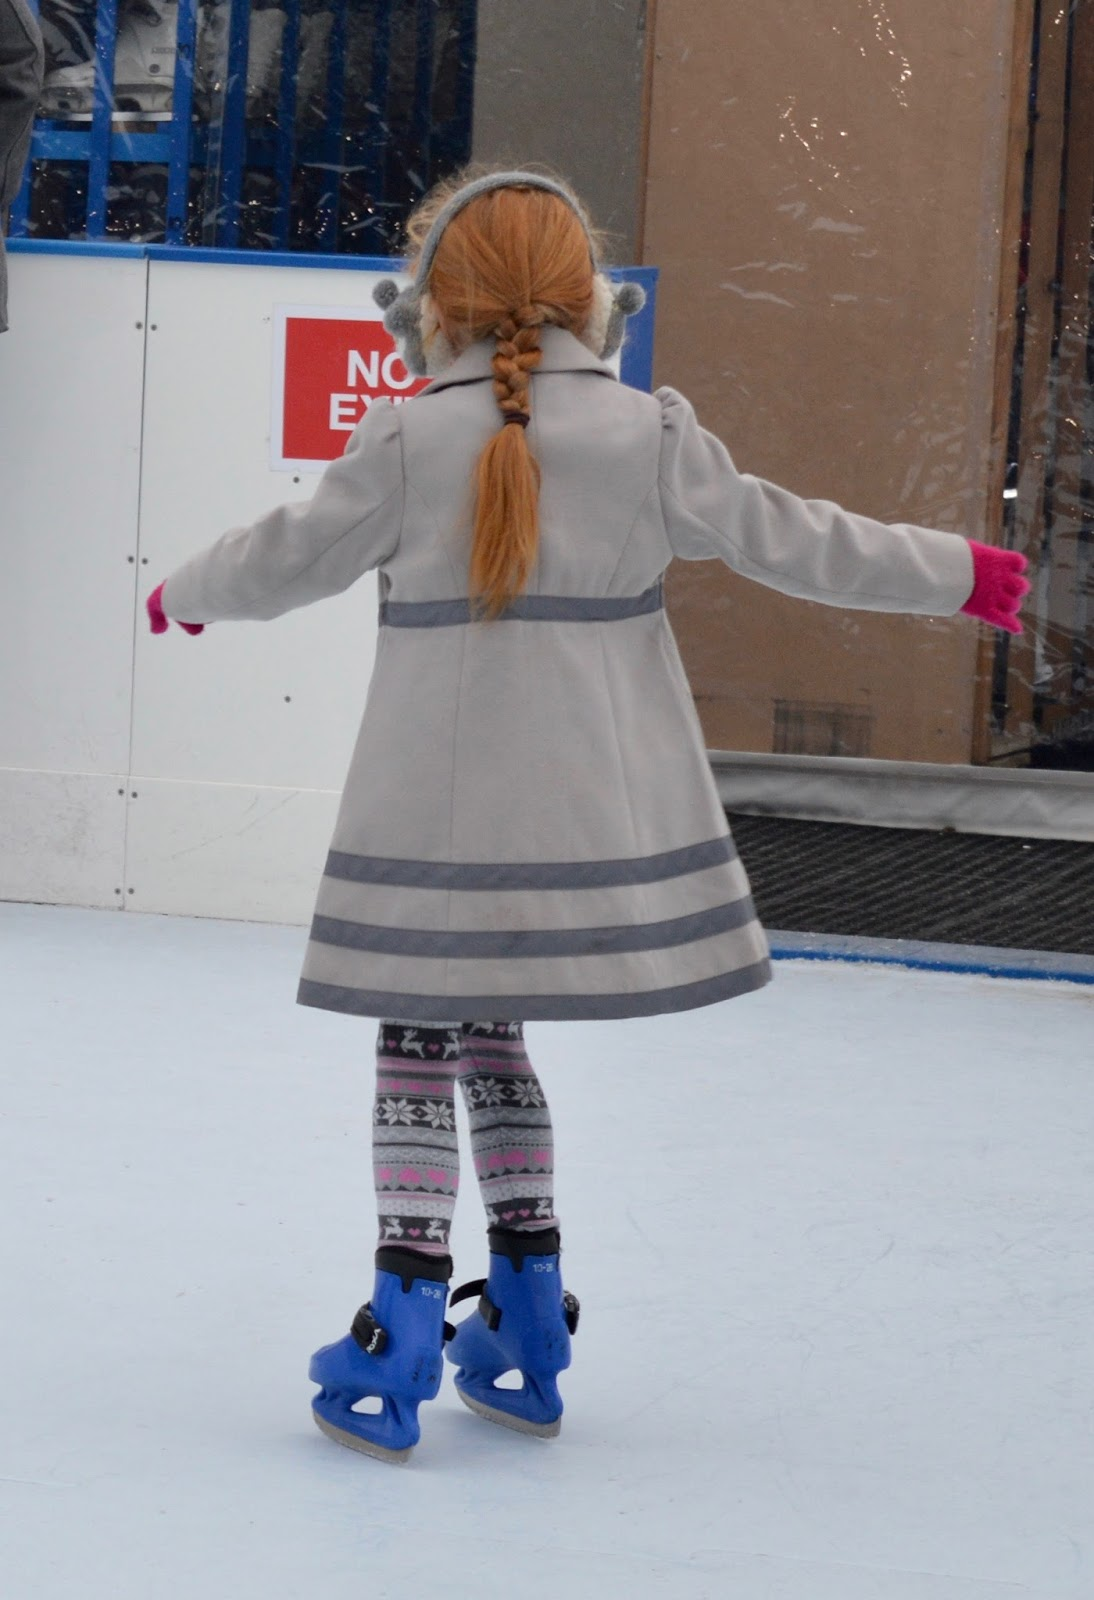 Frost of Forgetfulness | A FREE Winter Trail and activity at Woodhorn Museum in Northumberland (continues until 23rd December) - children's skating